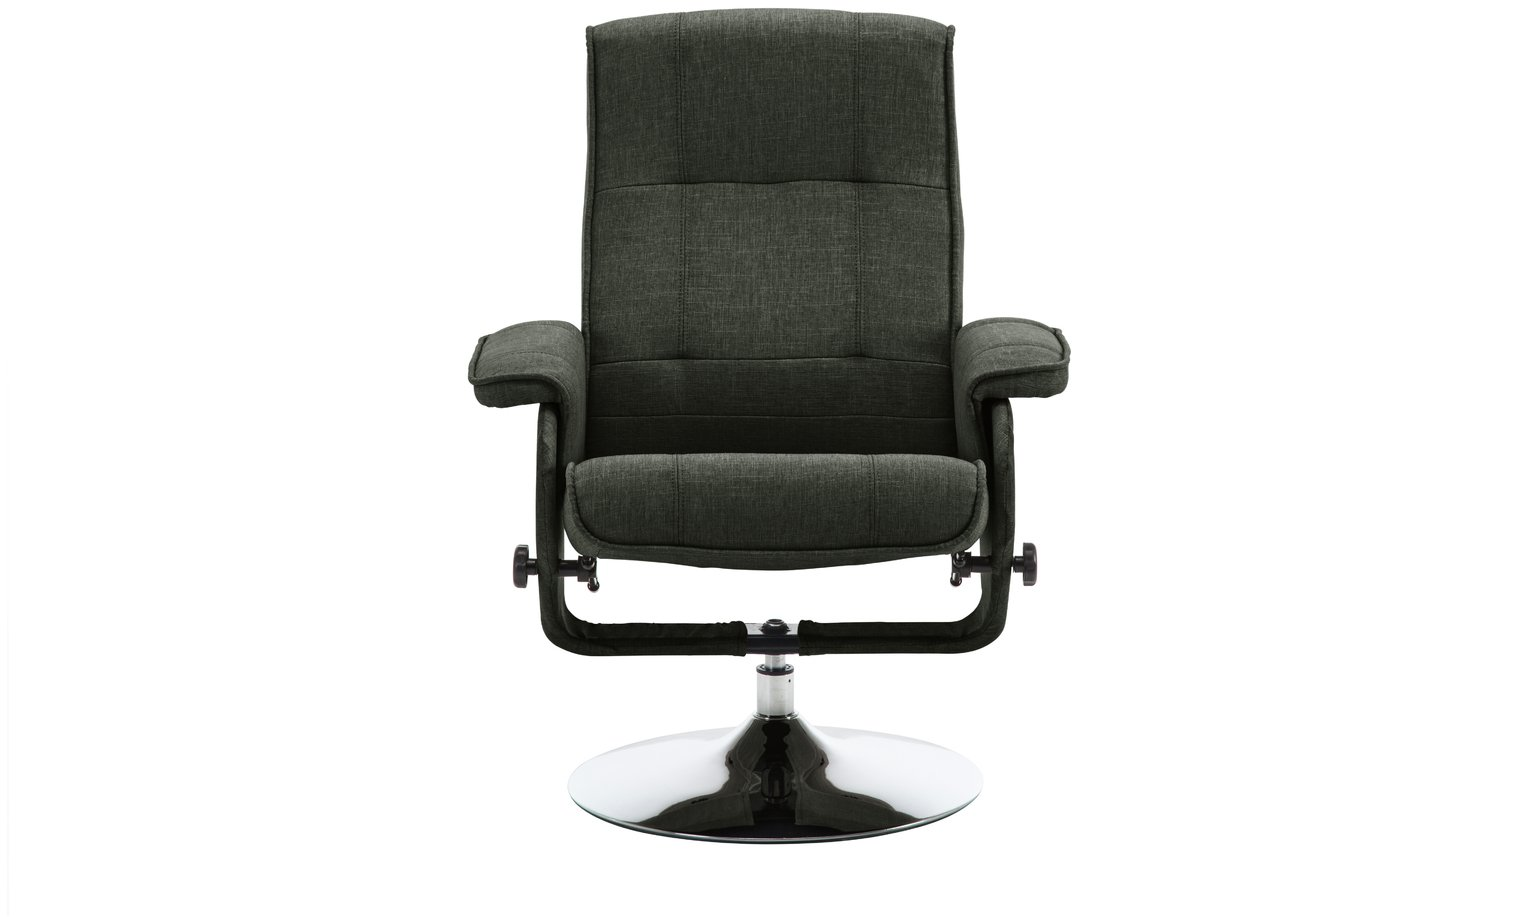 Argos Home Rowan Fabric Swivel Chair & Footstool - Charcoal